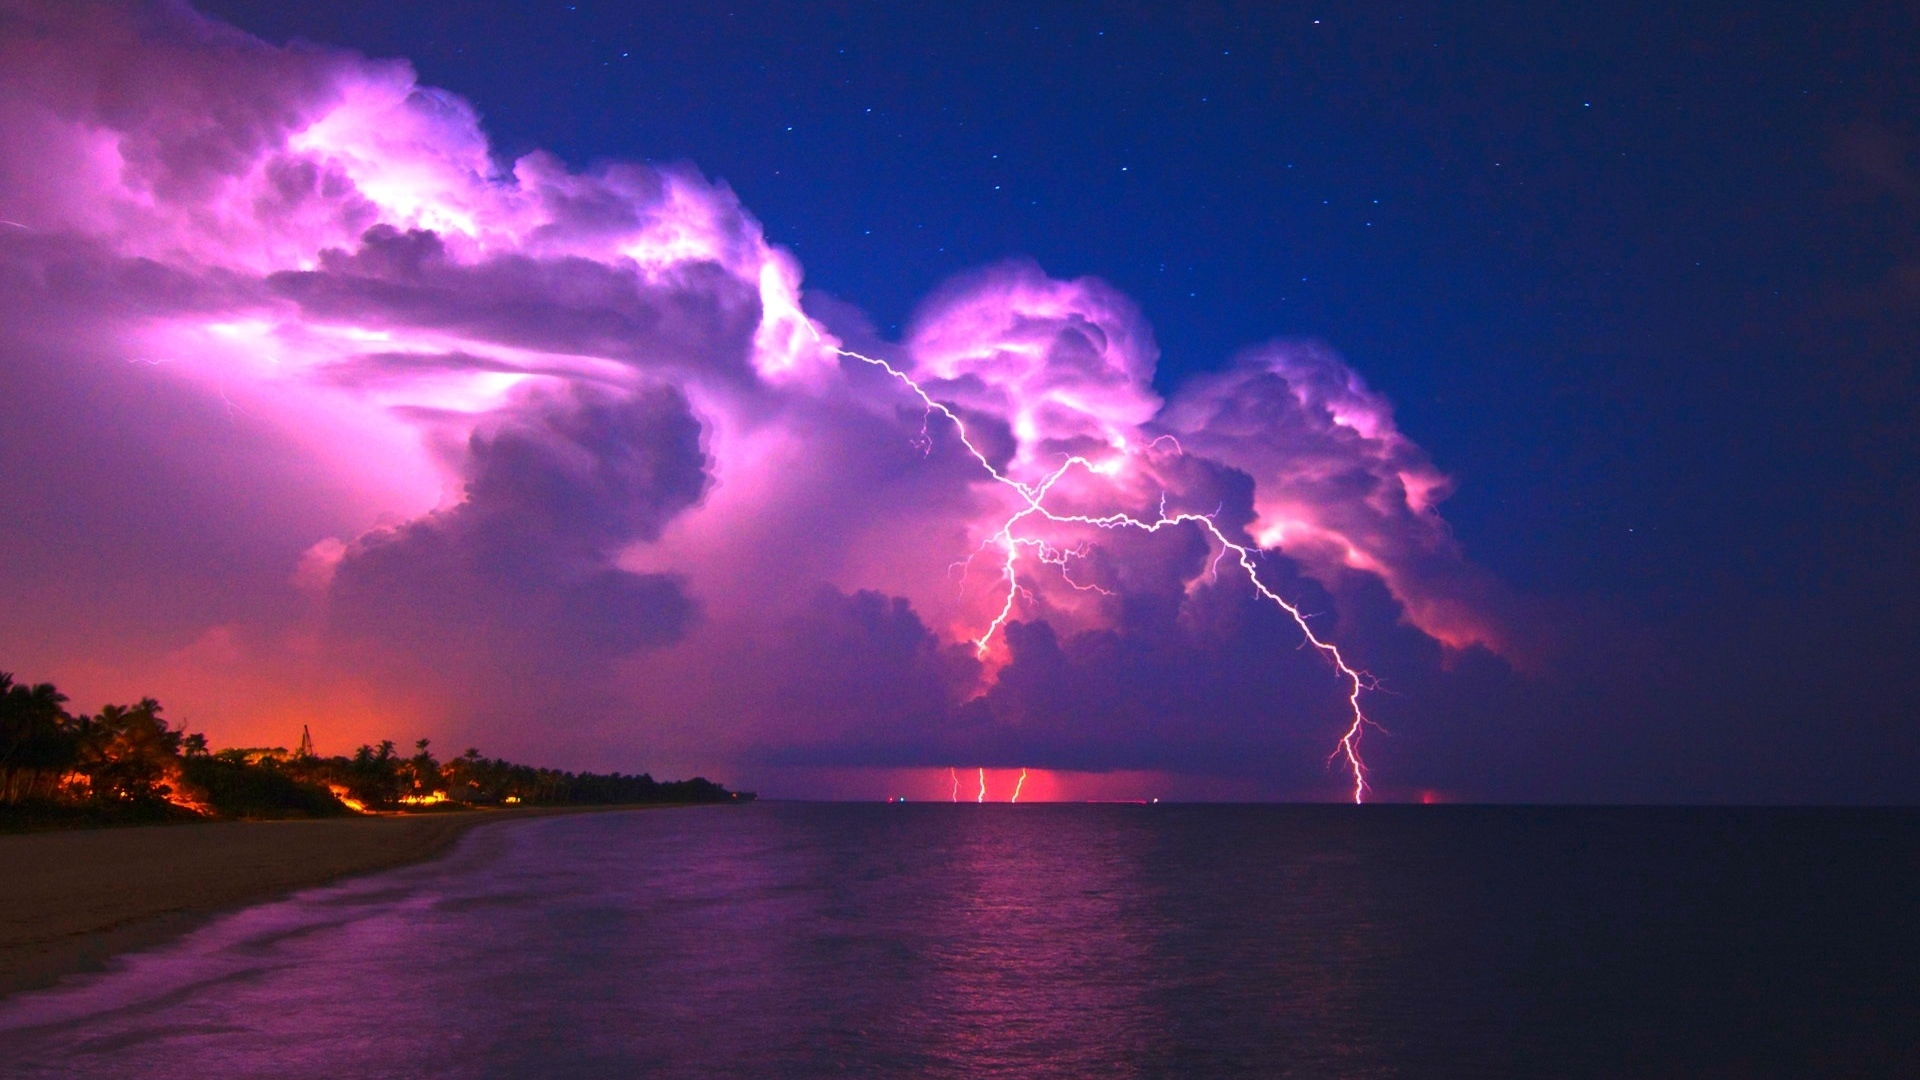 download wallpaper 1920x1080 lightning elements coast